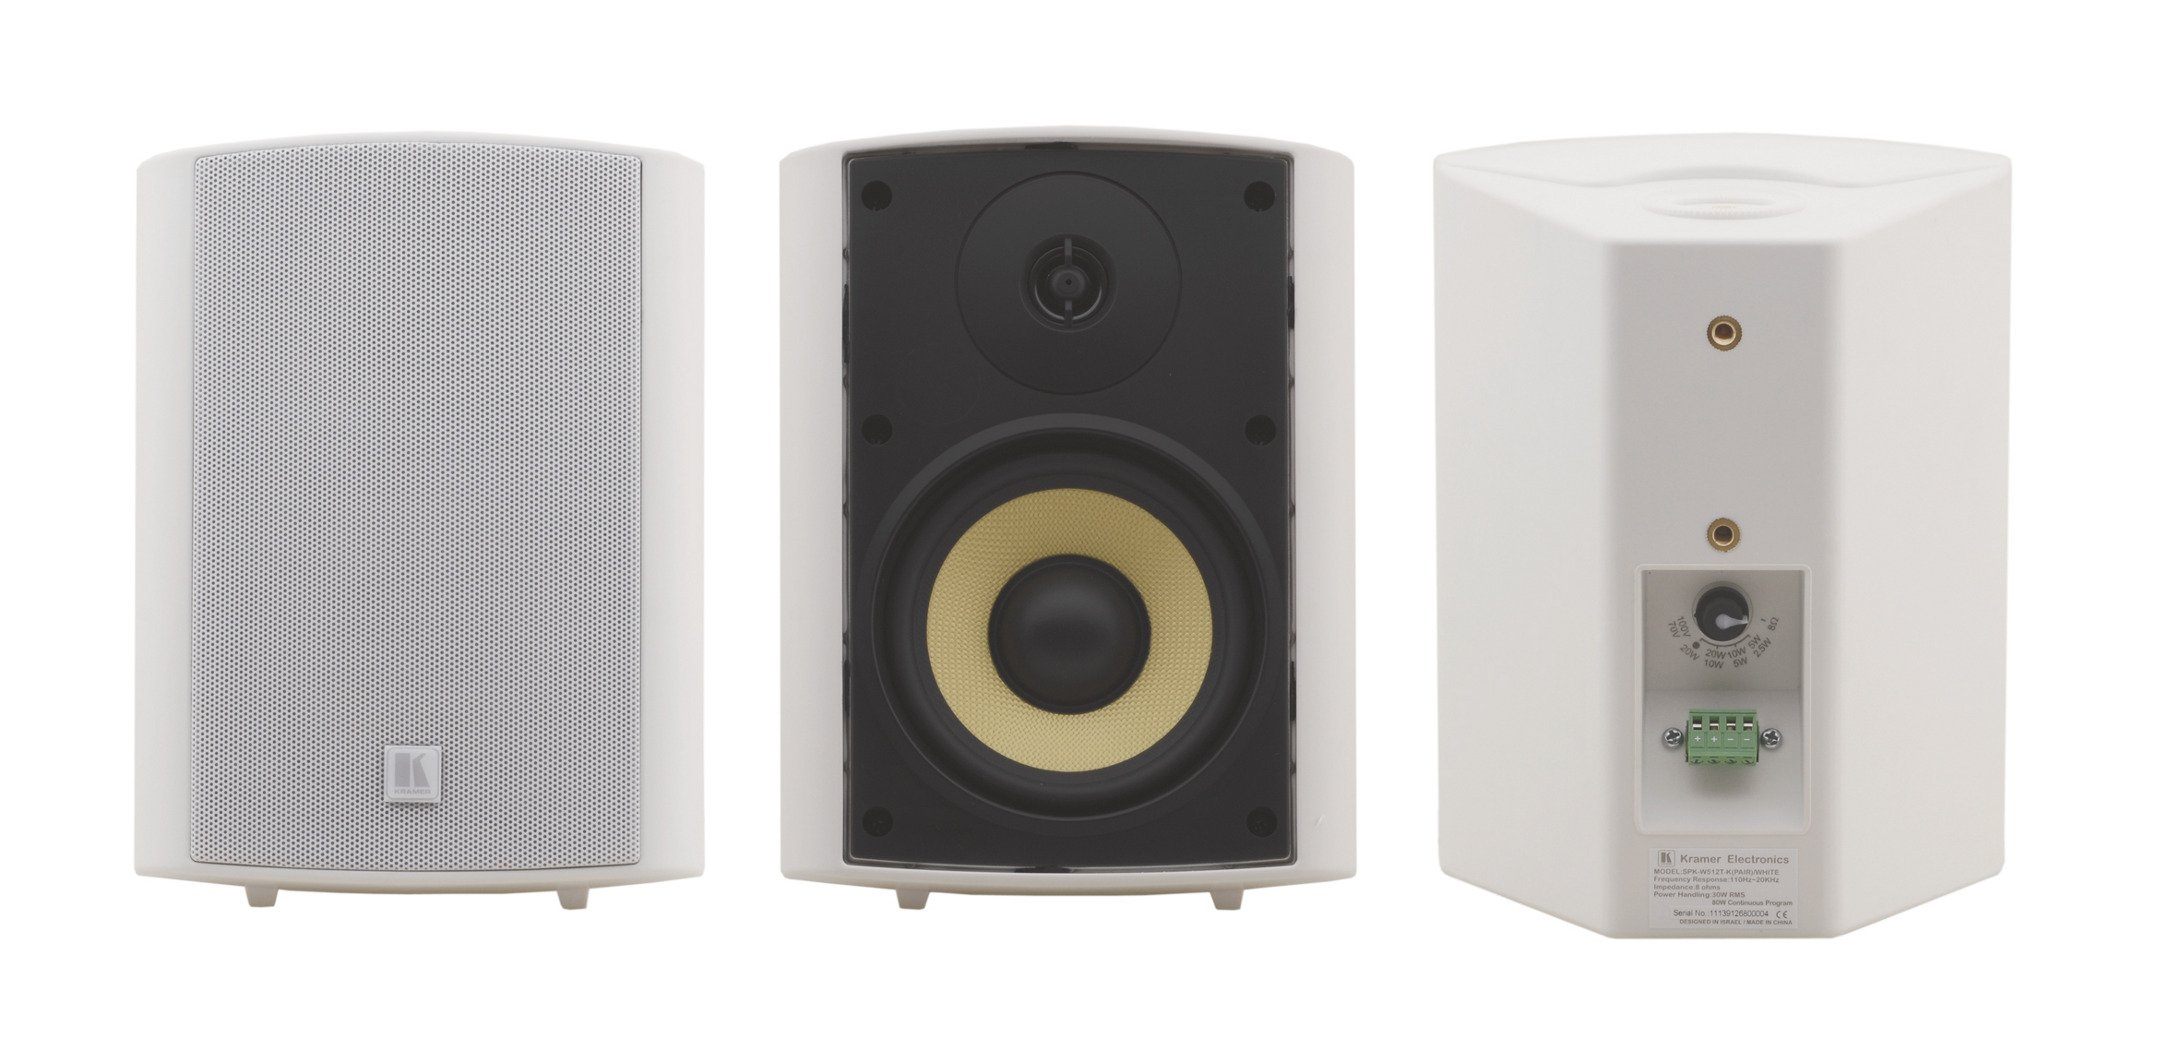 "Pair of White 5.25"", 2-Way, On-Wall Speakers"